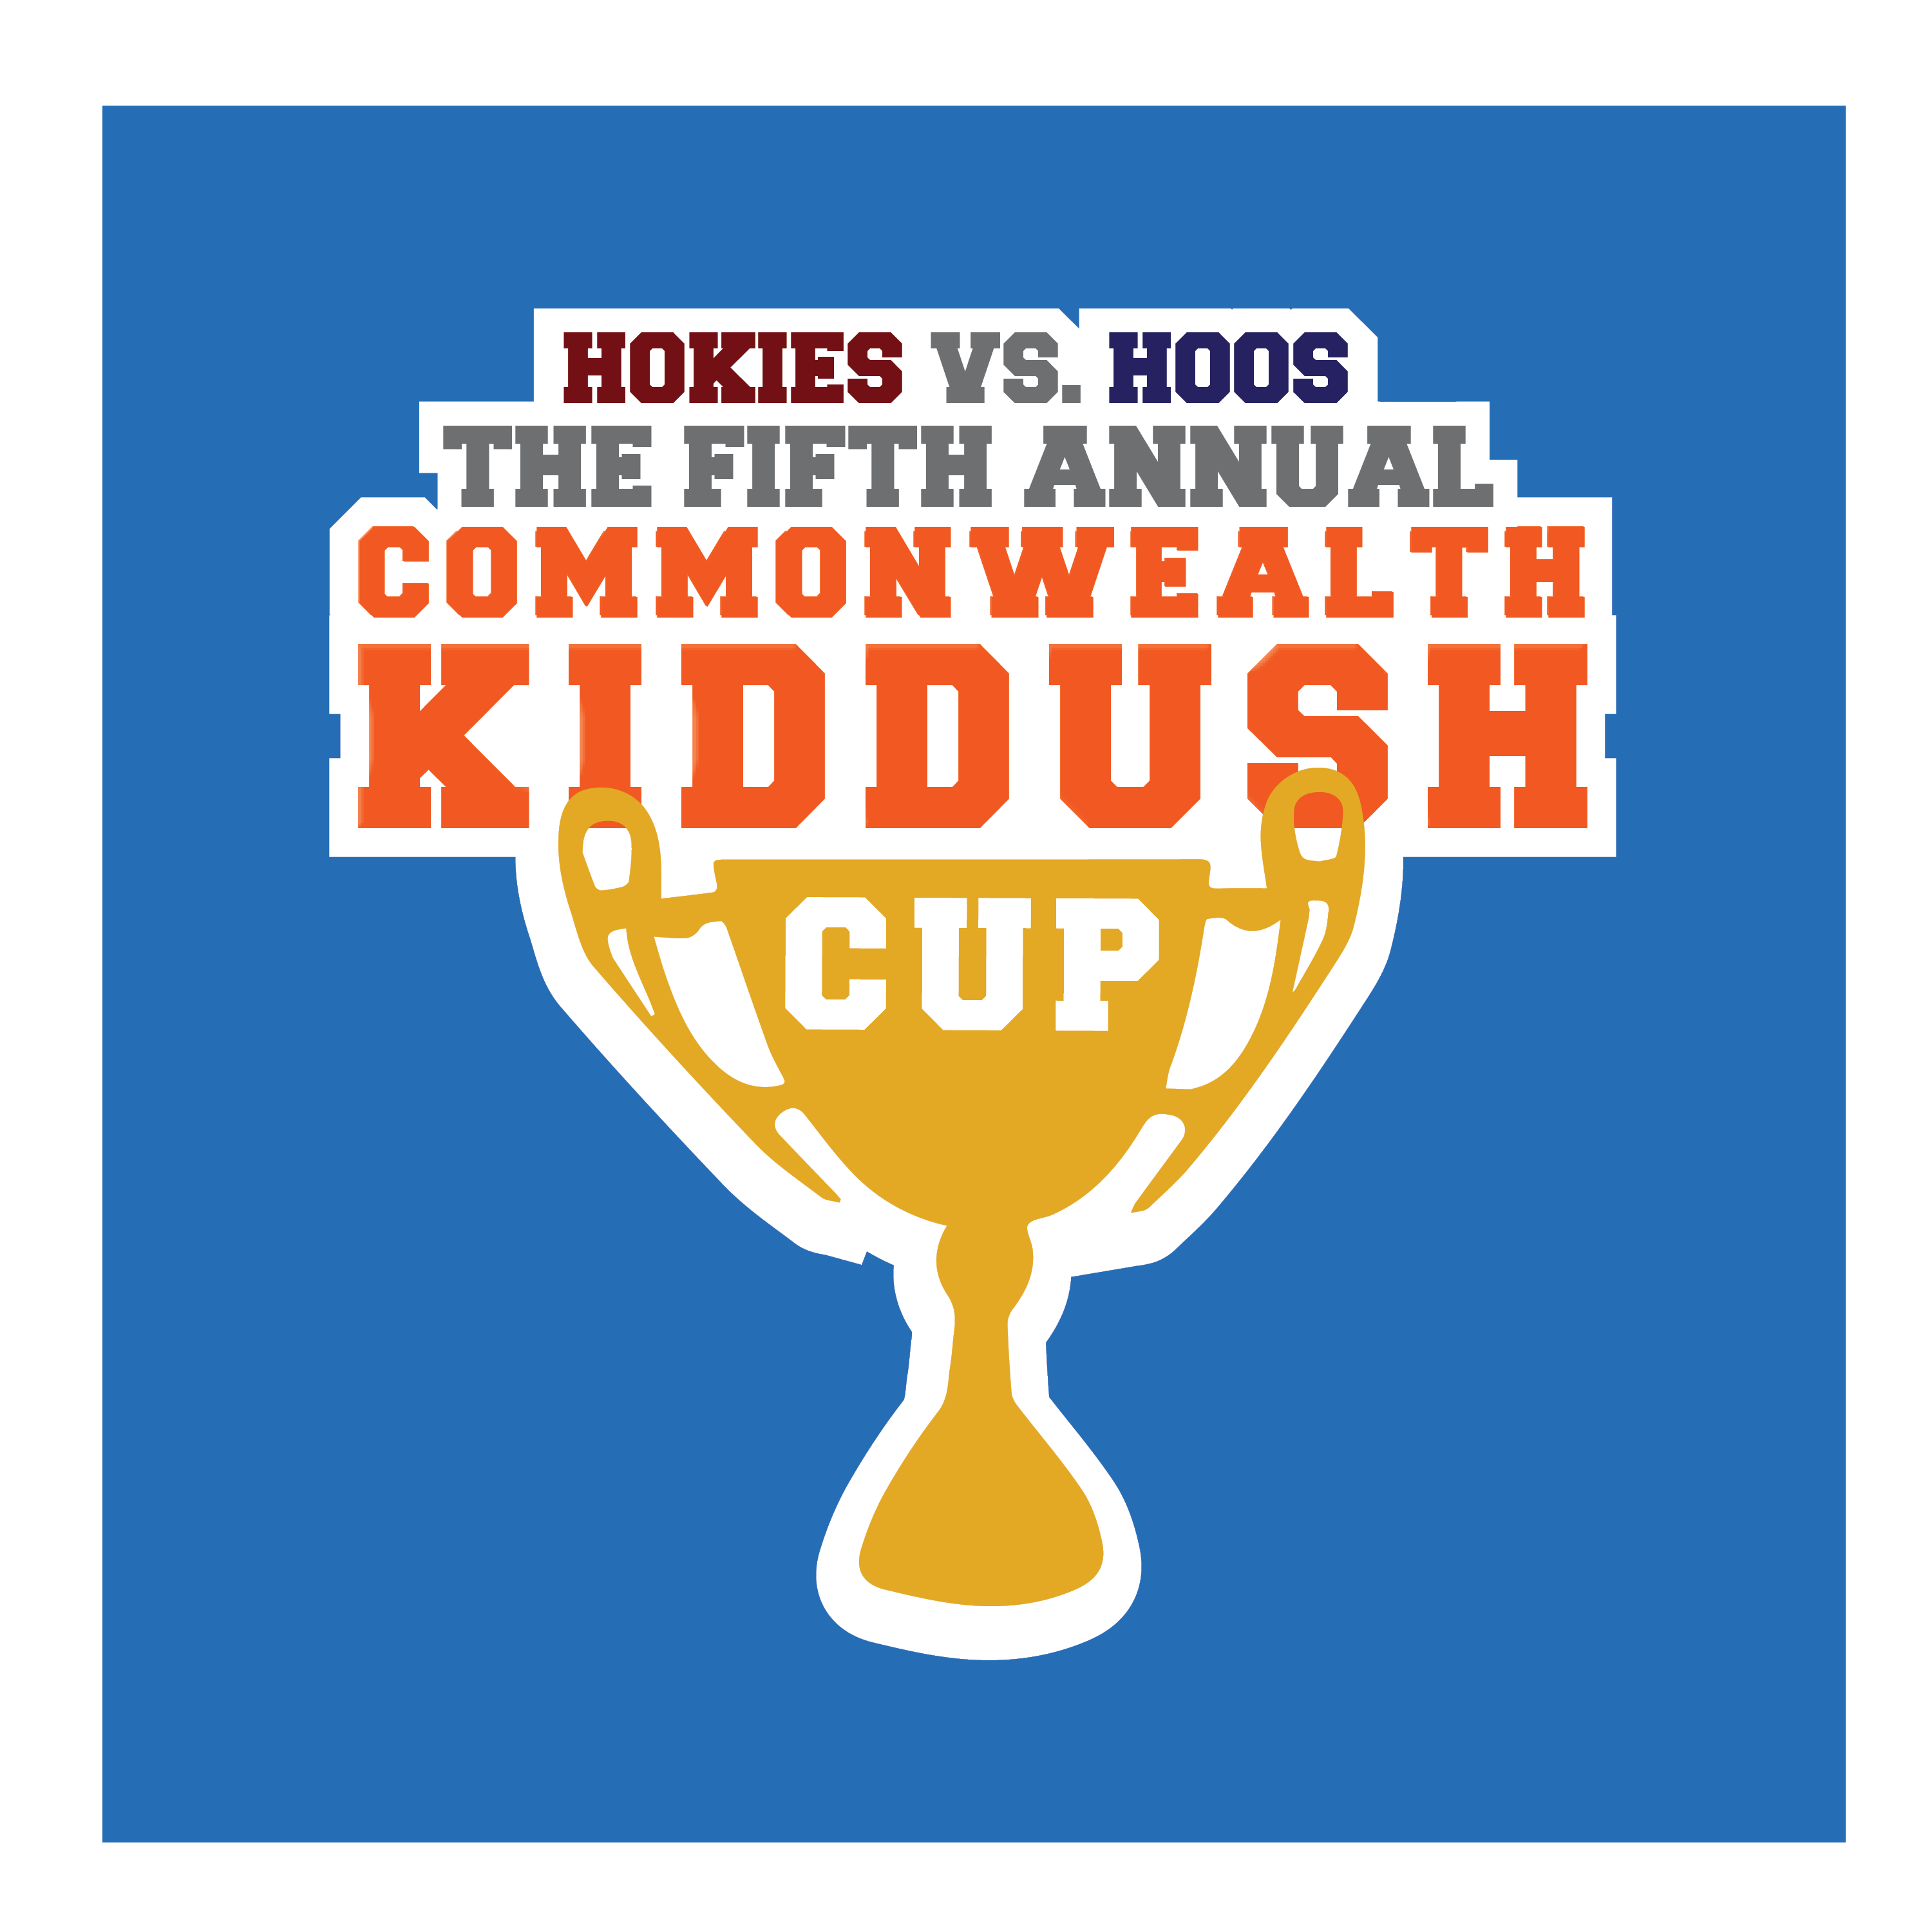 5th Annual Commonwealth Kiddush Cup Photo